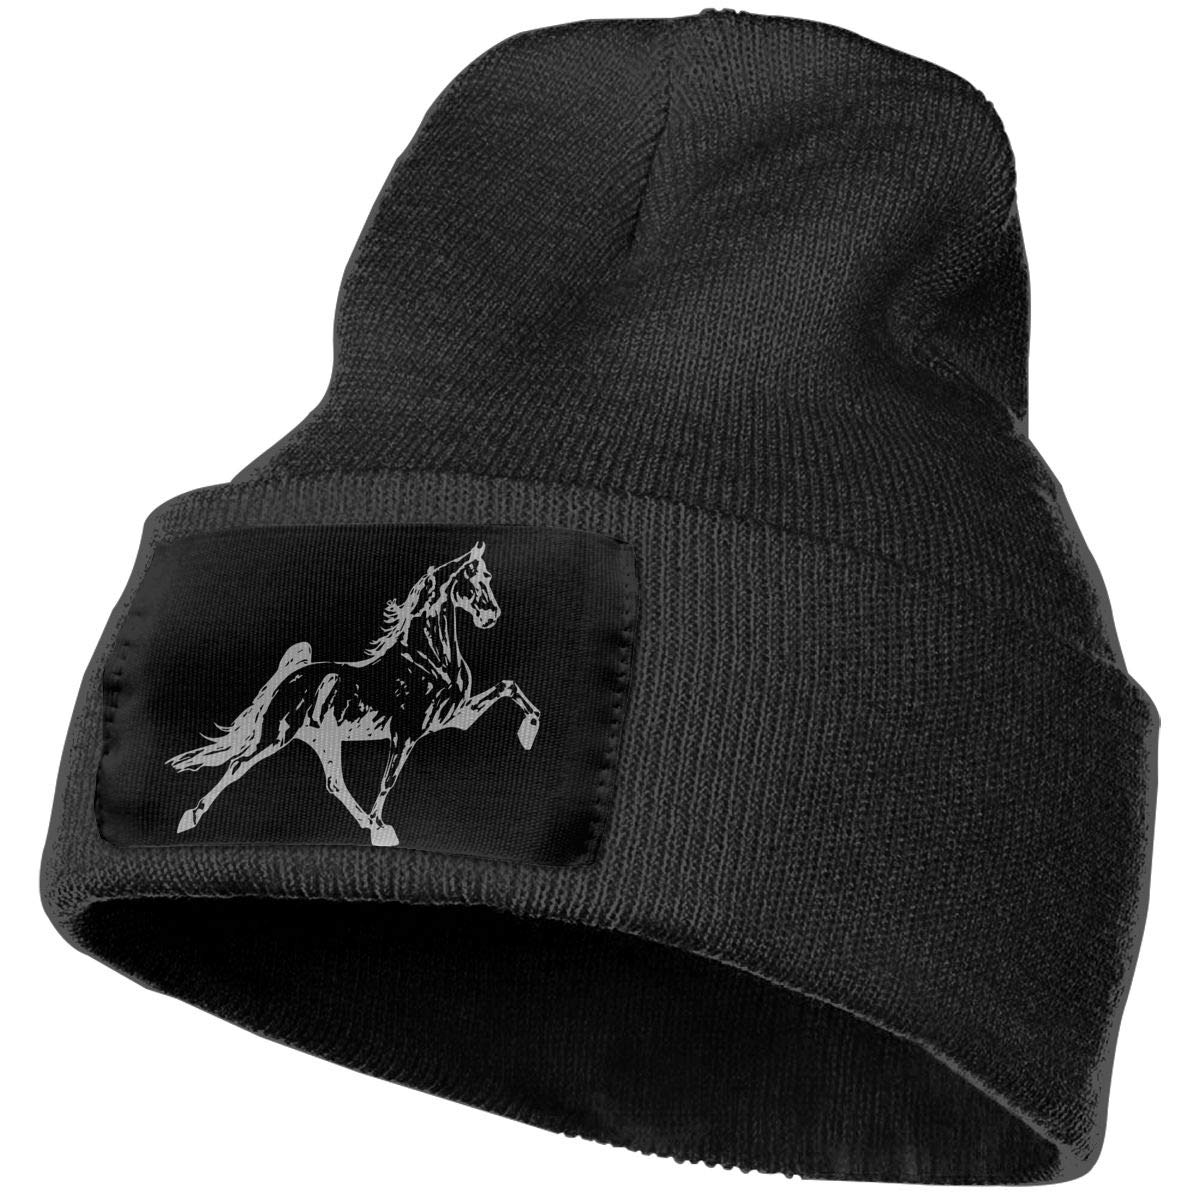 Tennessee Walking Horse Fashion Skull Beanie WHOO93@Y Mens and Womens 100/% Acrylic Knitted Hat Cap